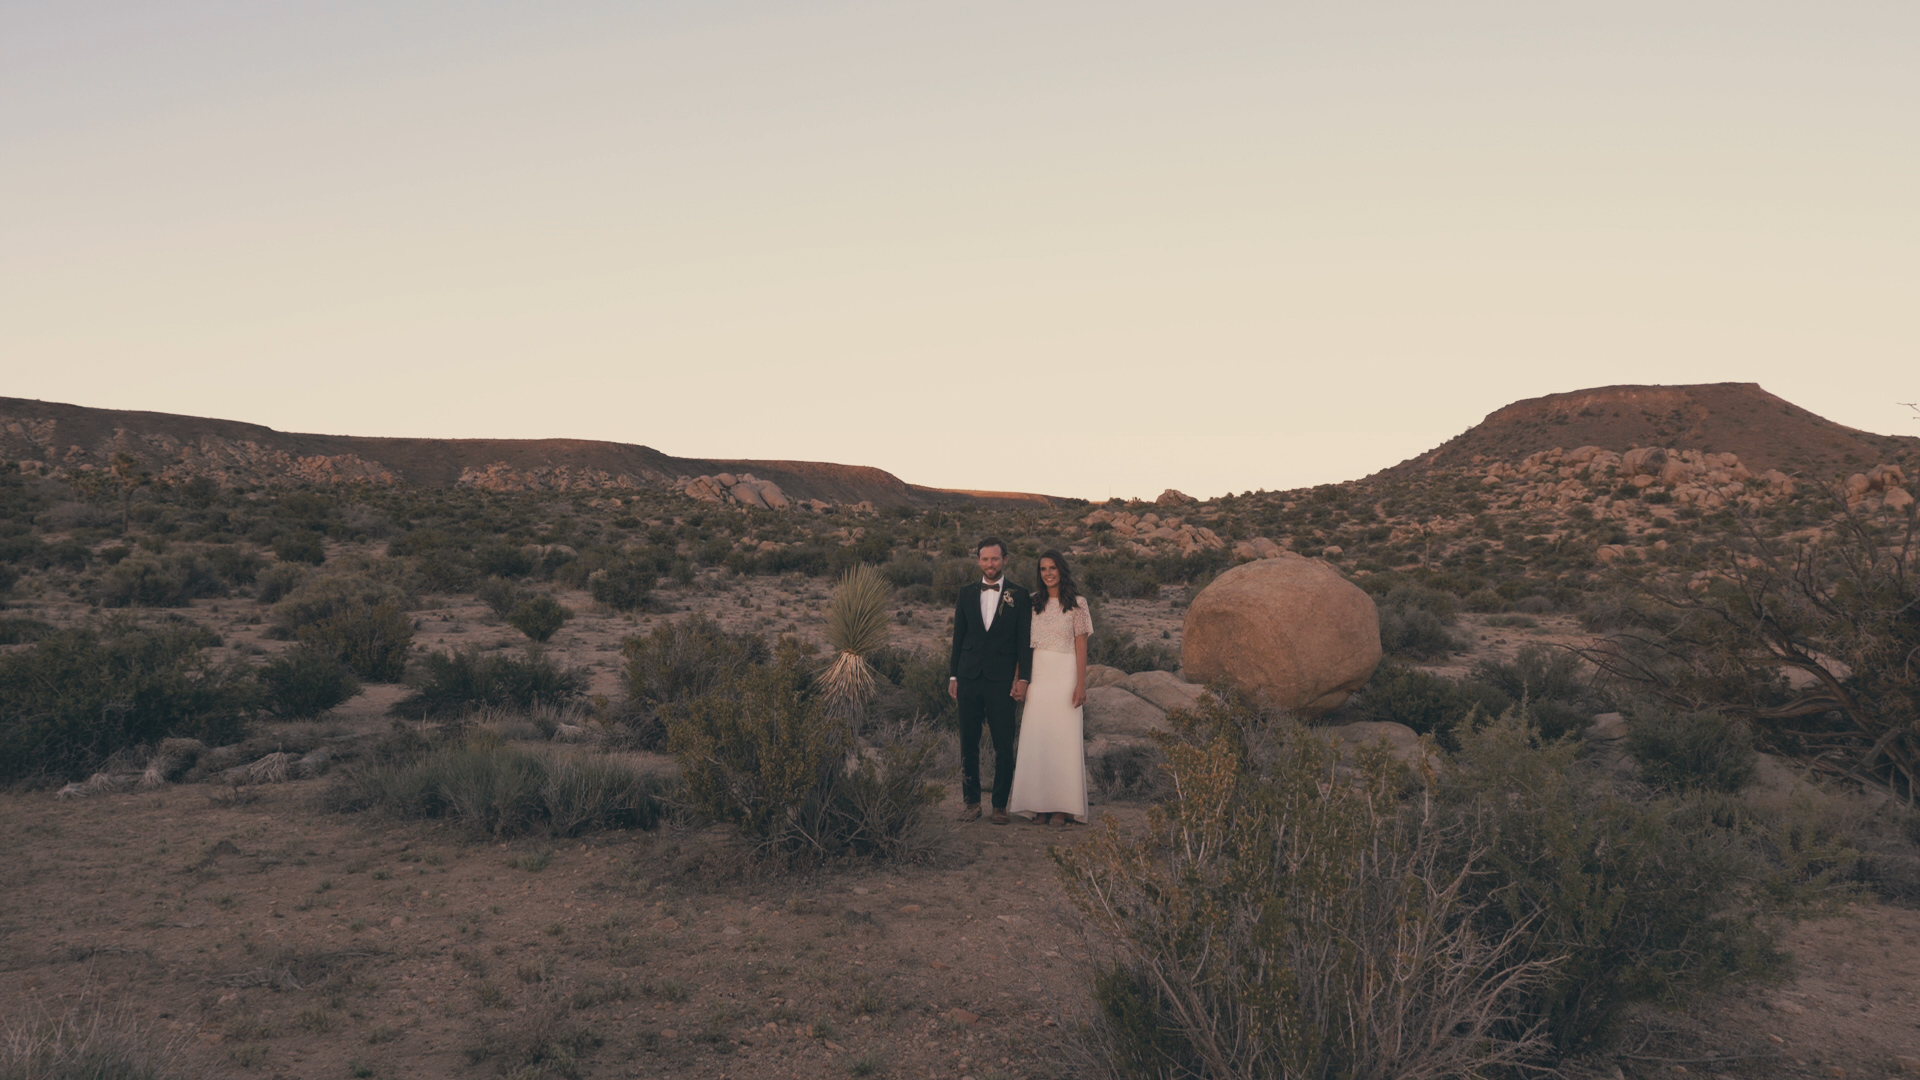 Bride and Groom at dusk on their wedding day near Joshua Tree